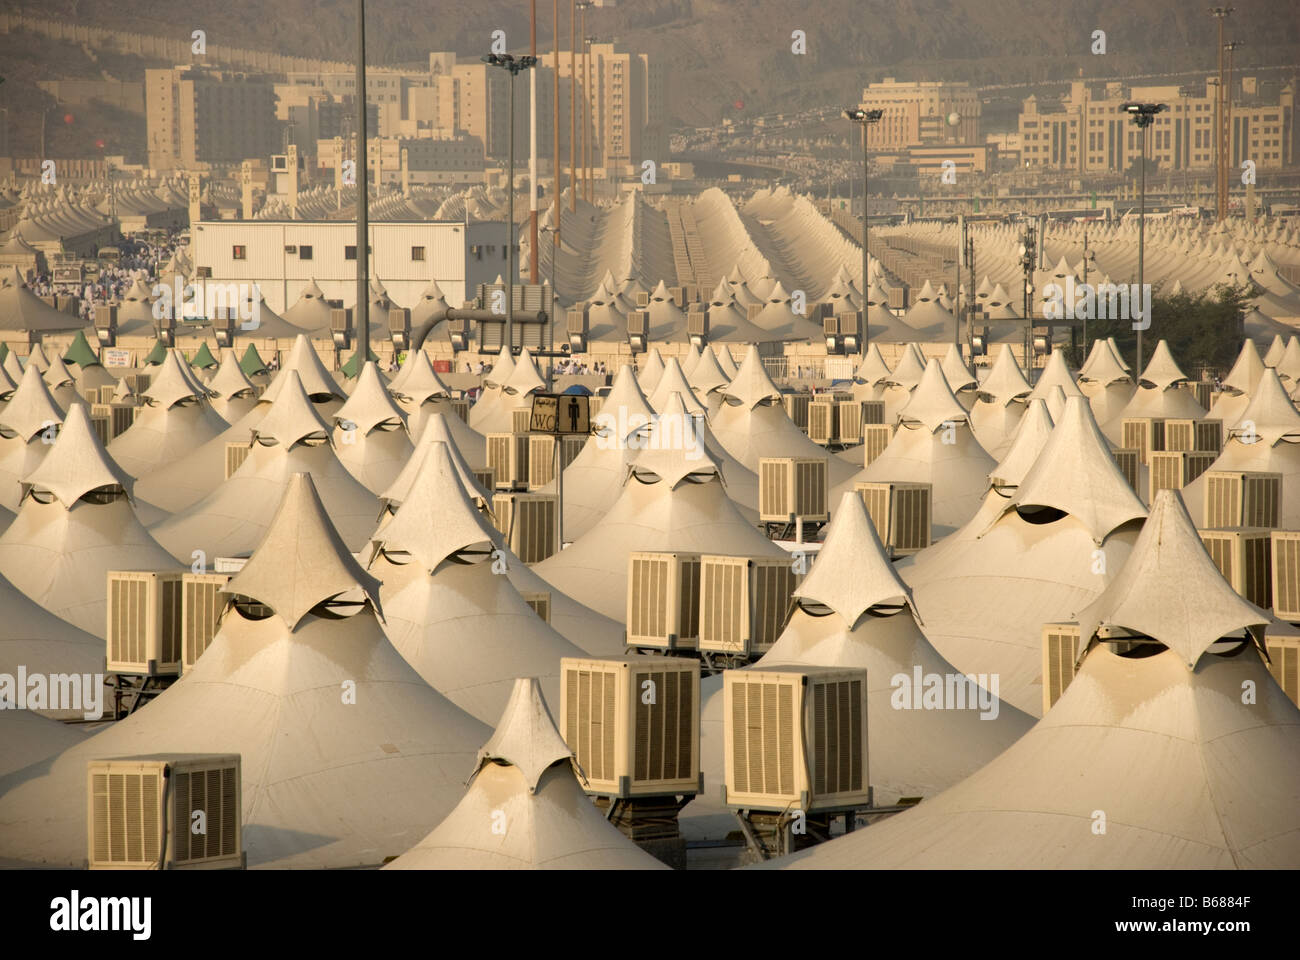 A Limited Overview Of Some Tents For Hajj Pilgrims In Mina Makkah Stock Photo Alamy